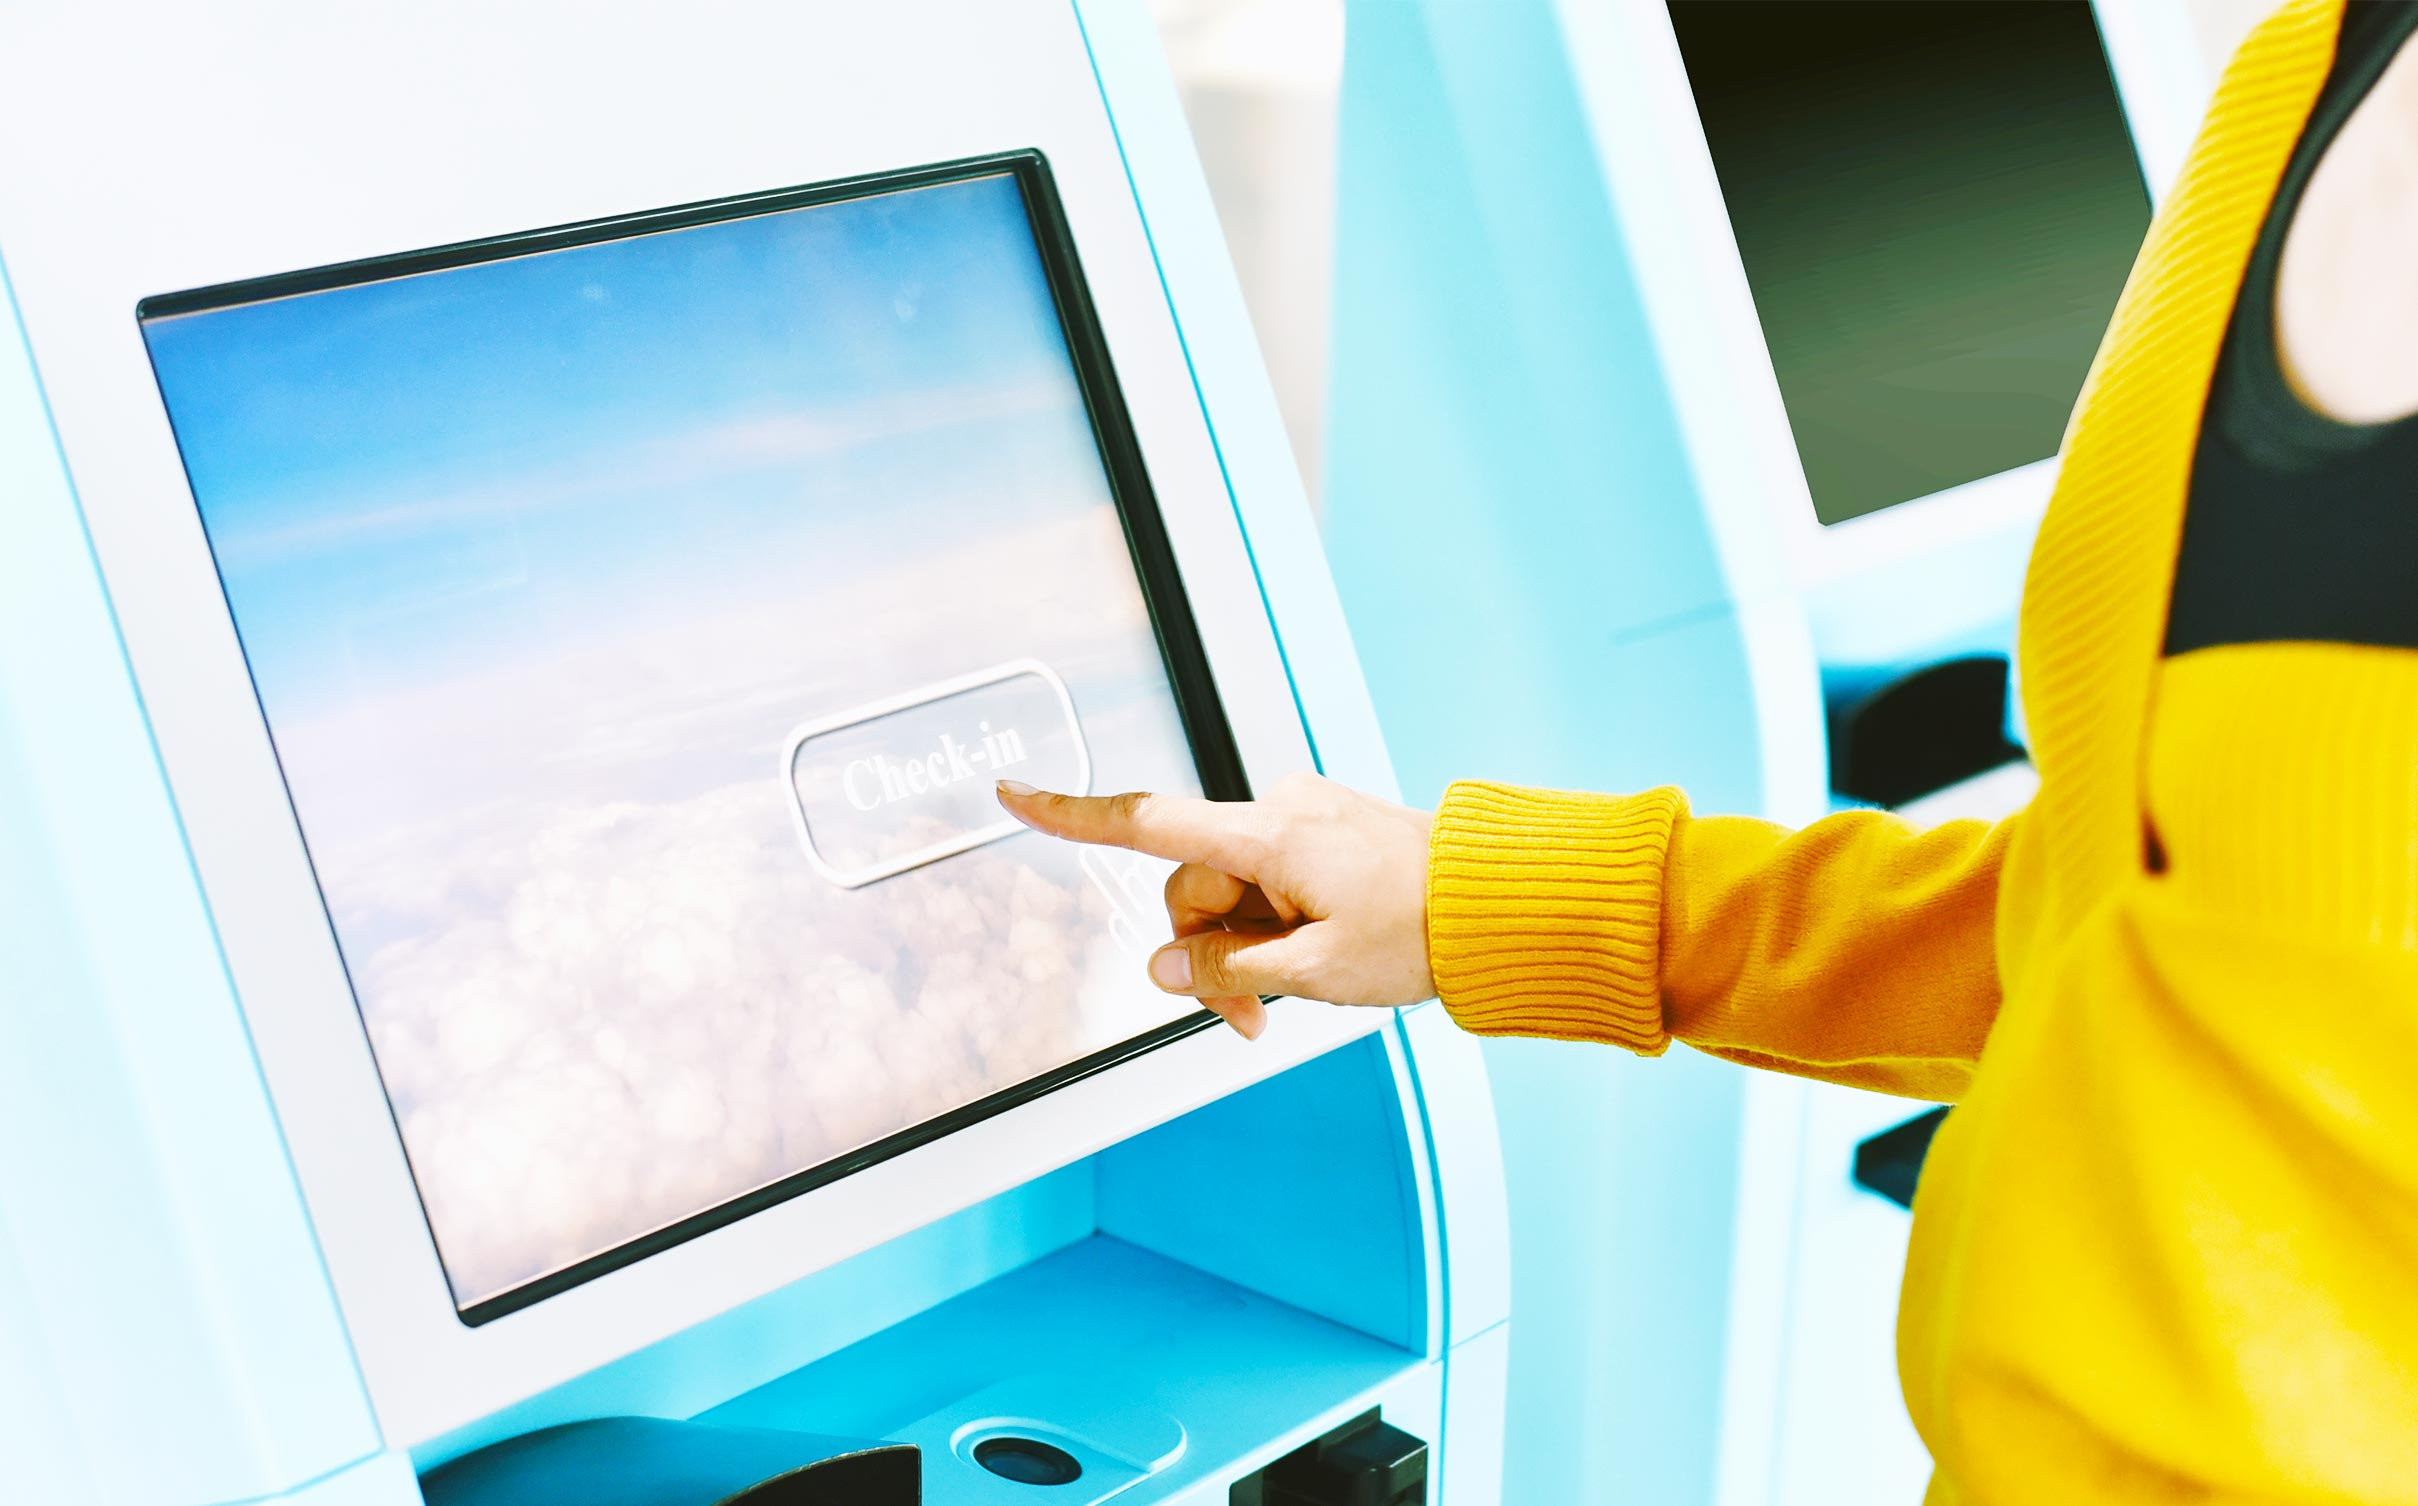 Self check-in at airports